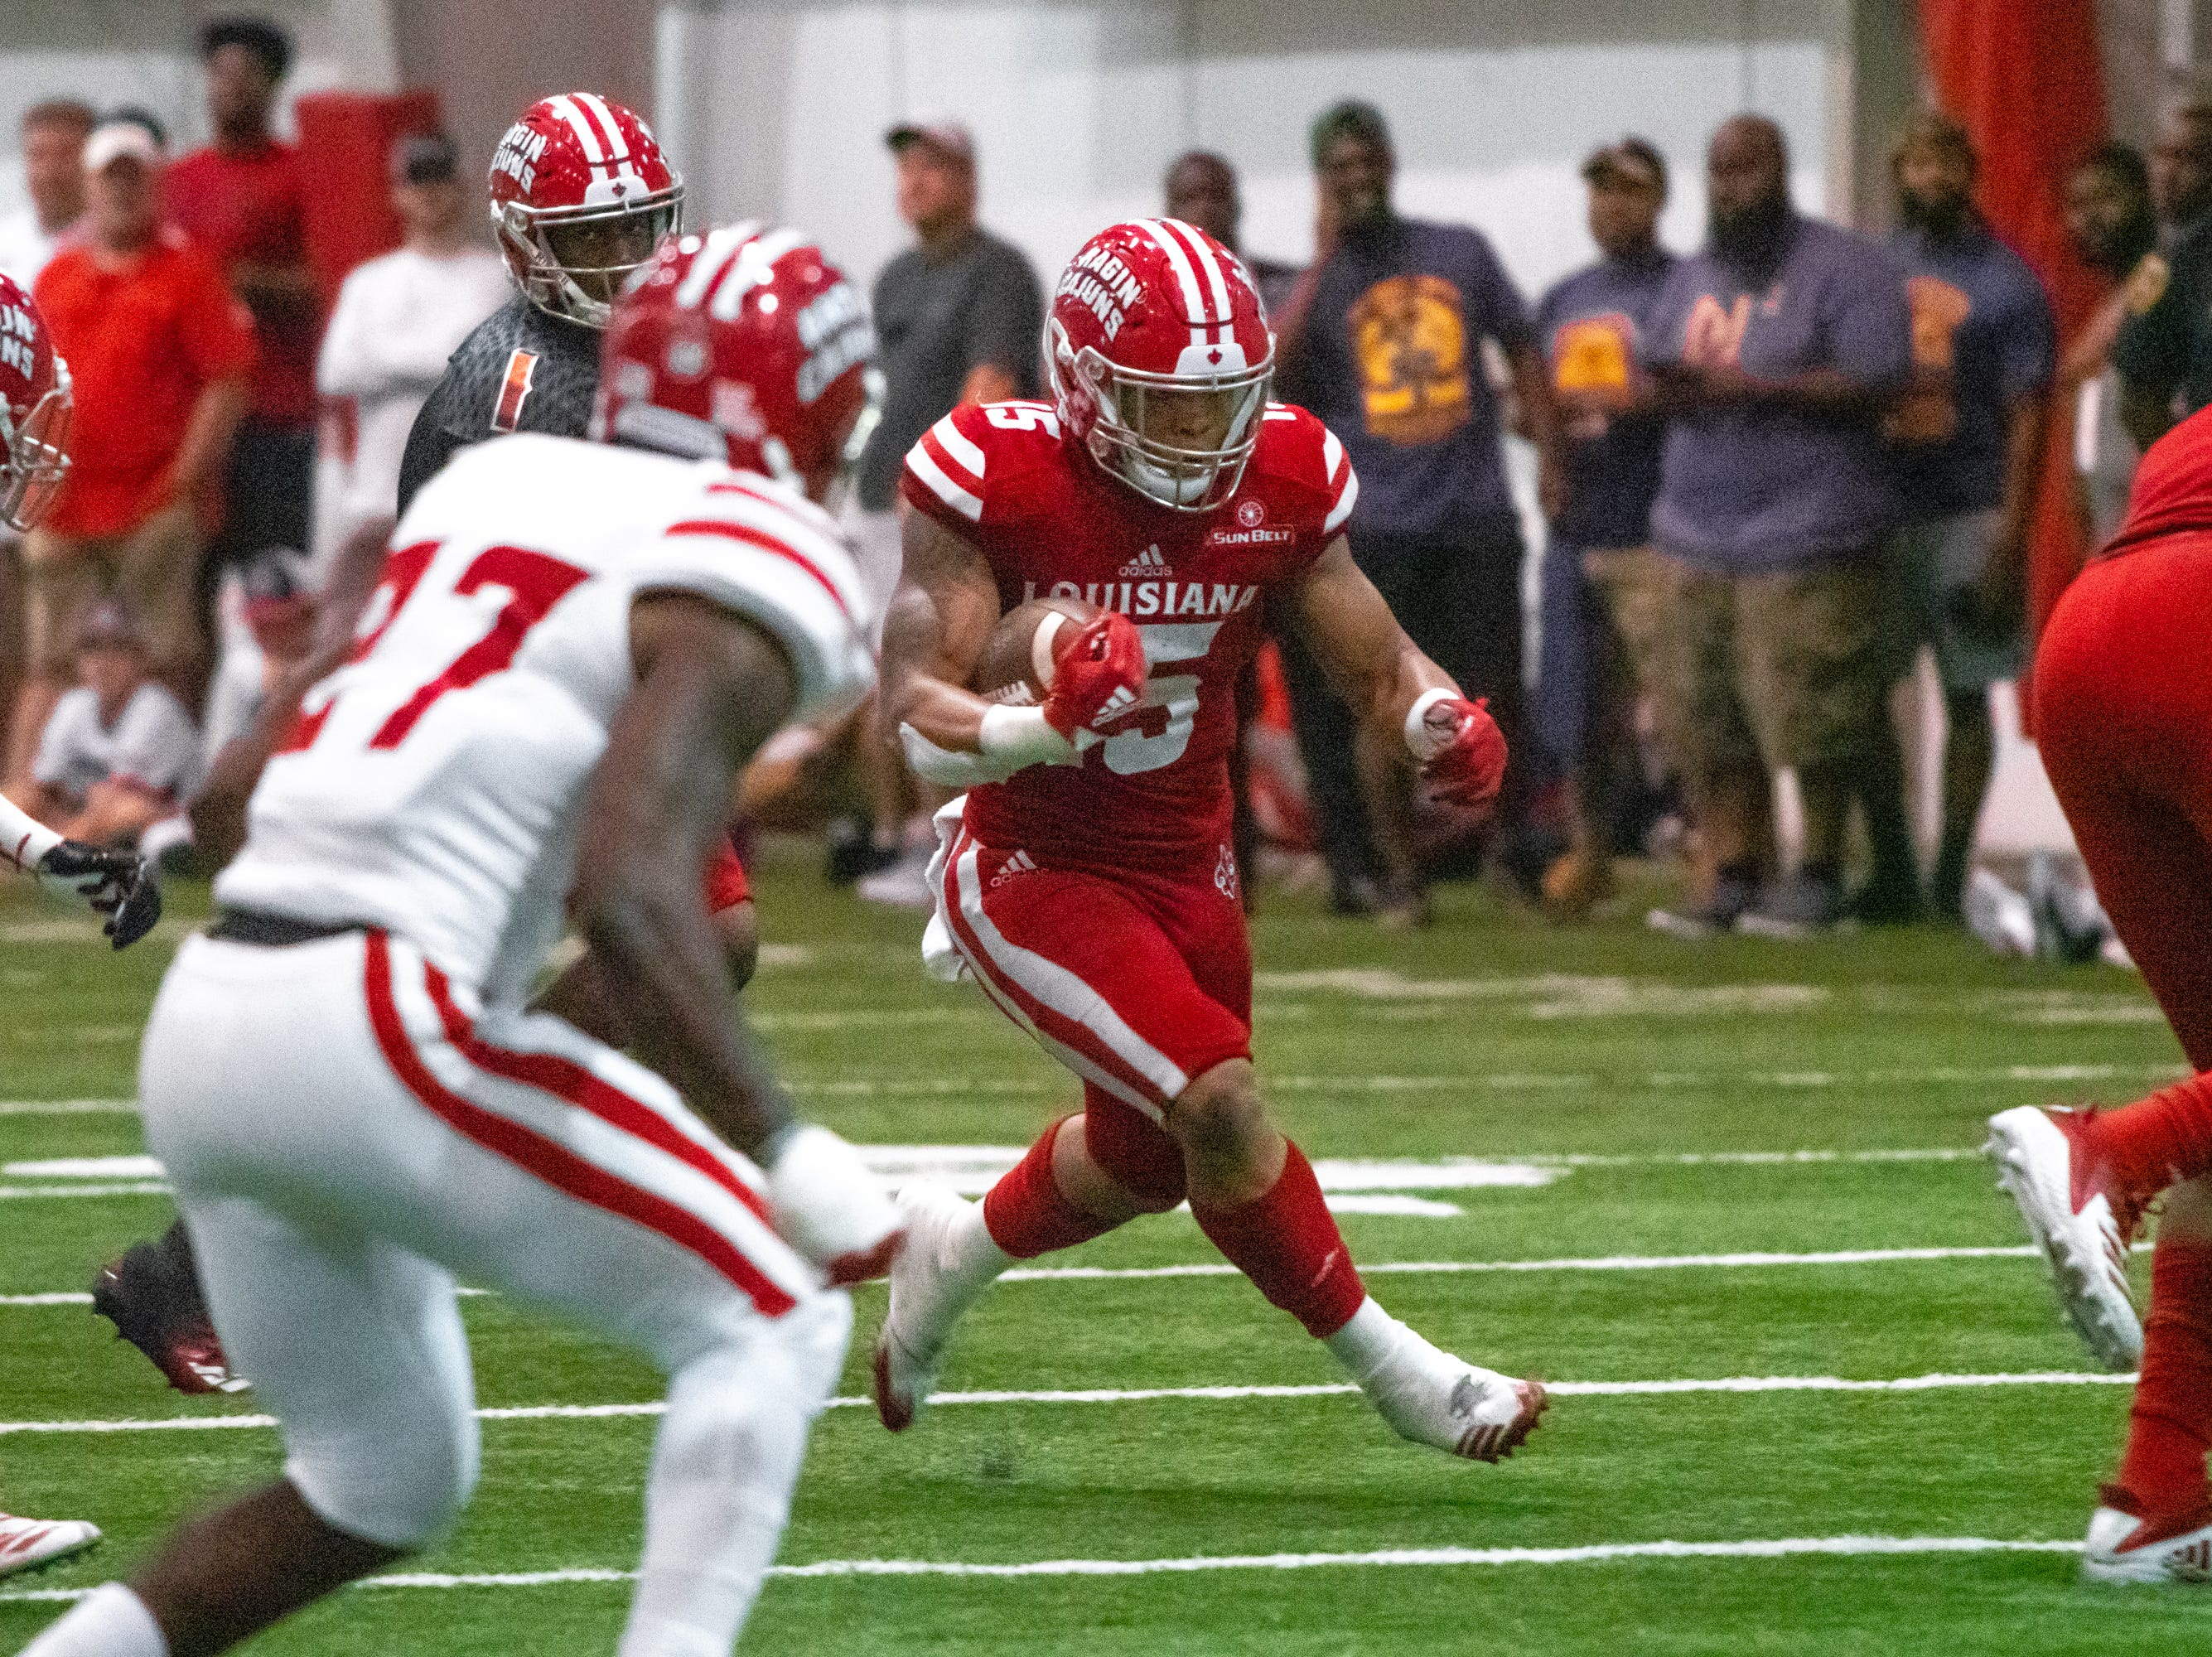 UL's Elijah Mitchell carries the ball during the play as the Ragin' Cajuns football team plays their annual Spring football game against one another in the Leon Moncla trainig facility on April 13, 2019.